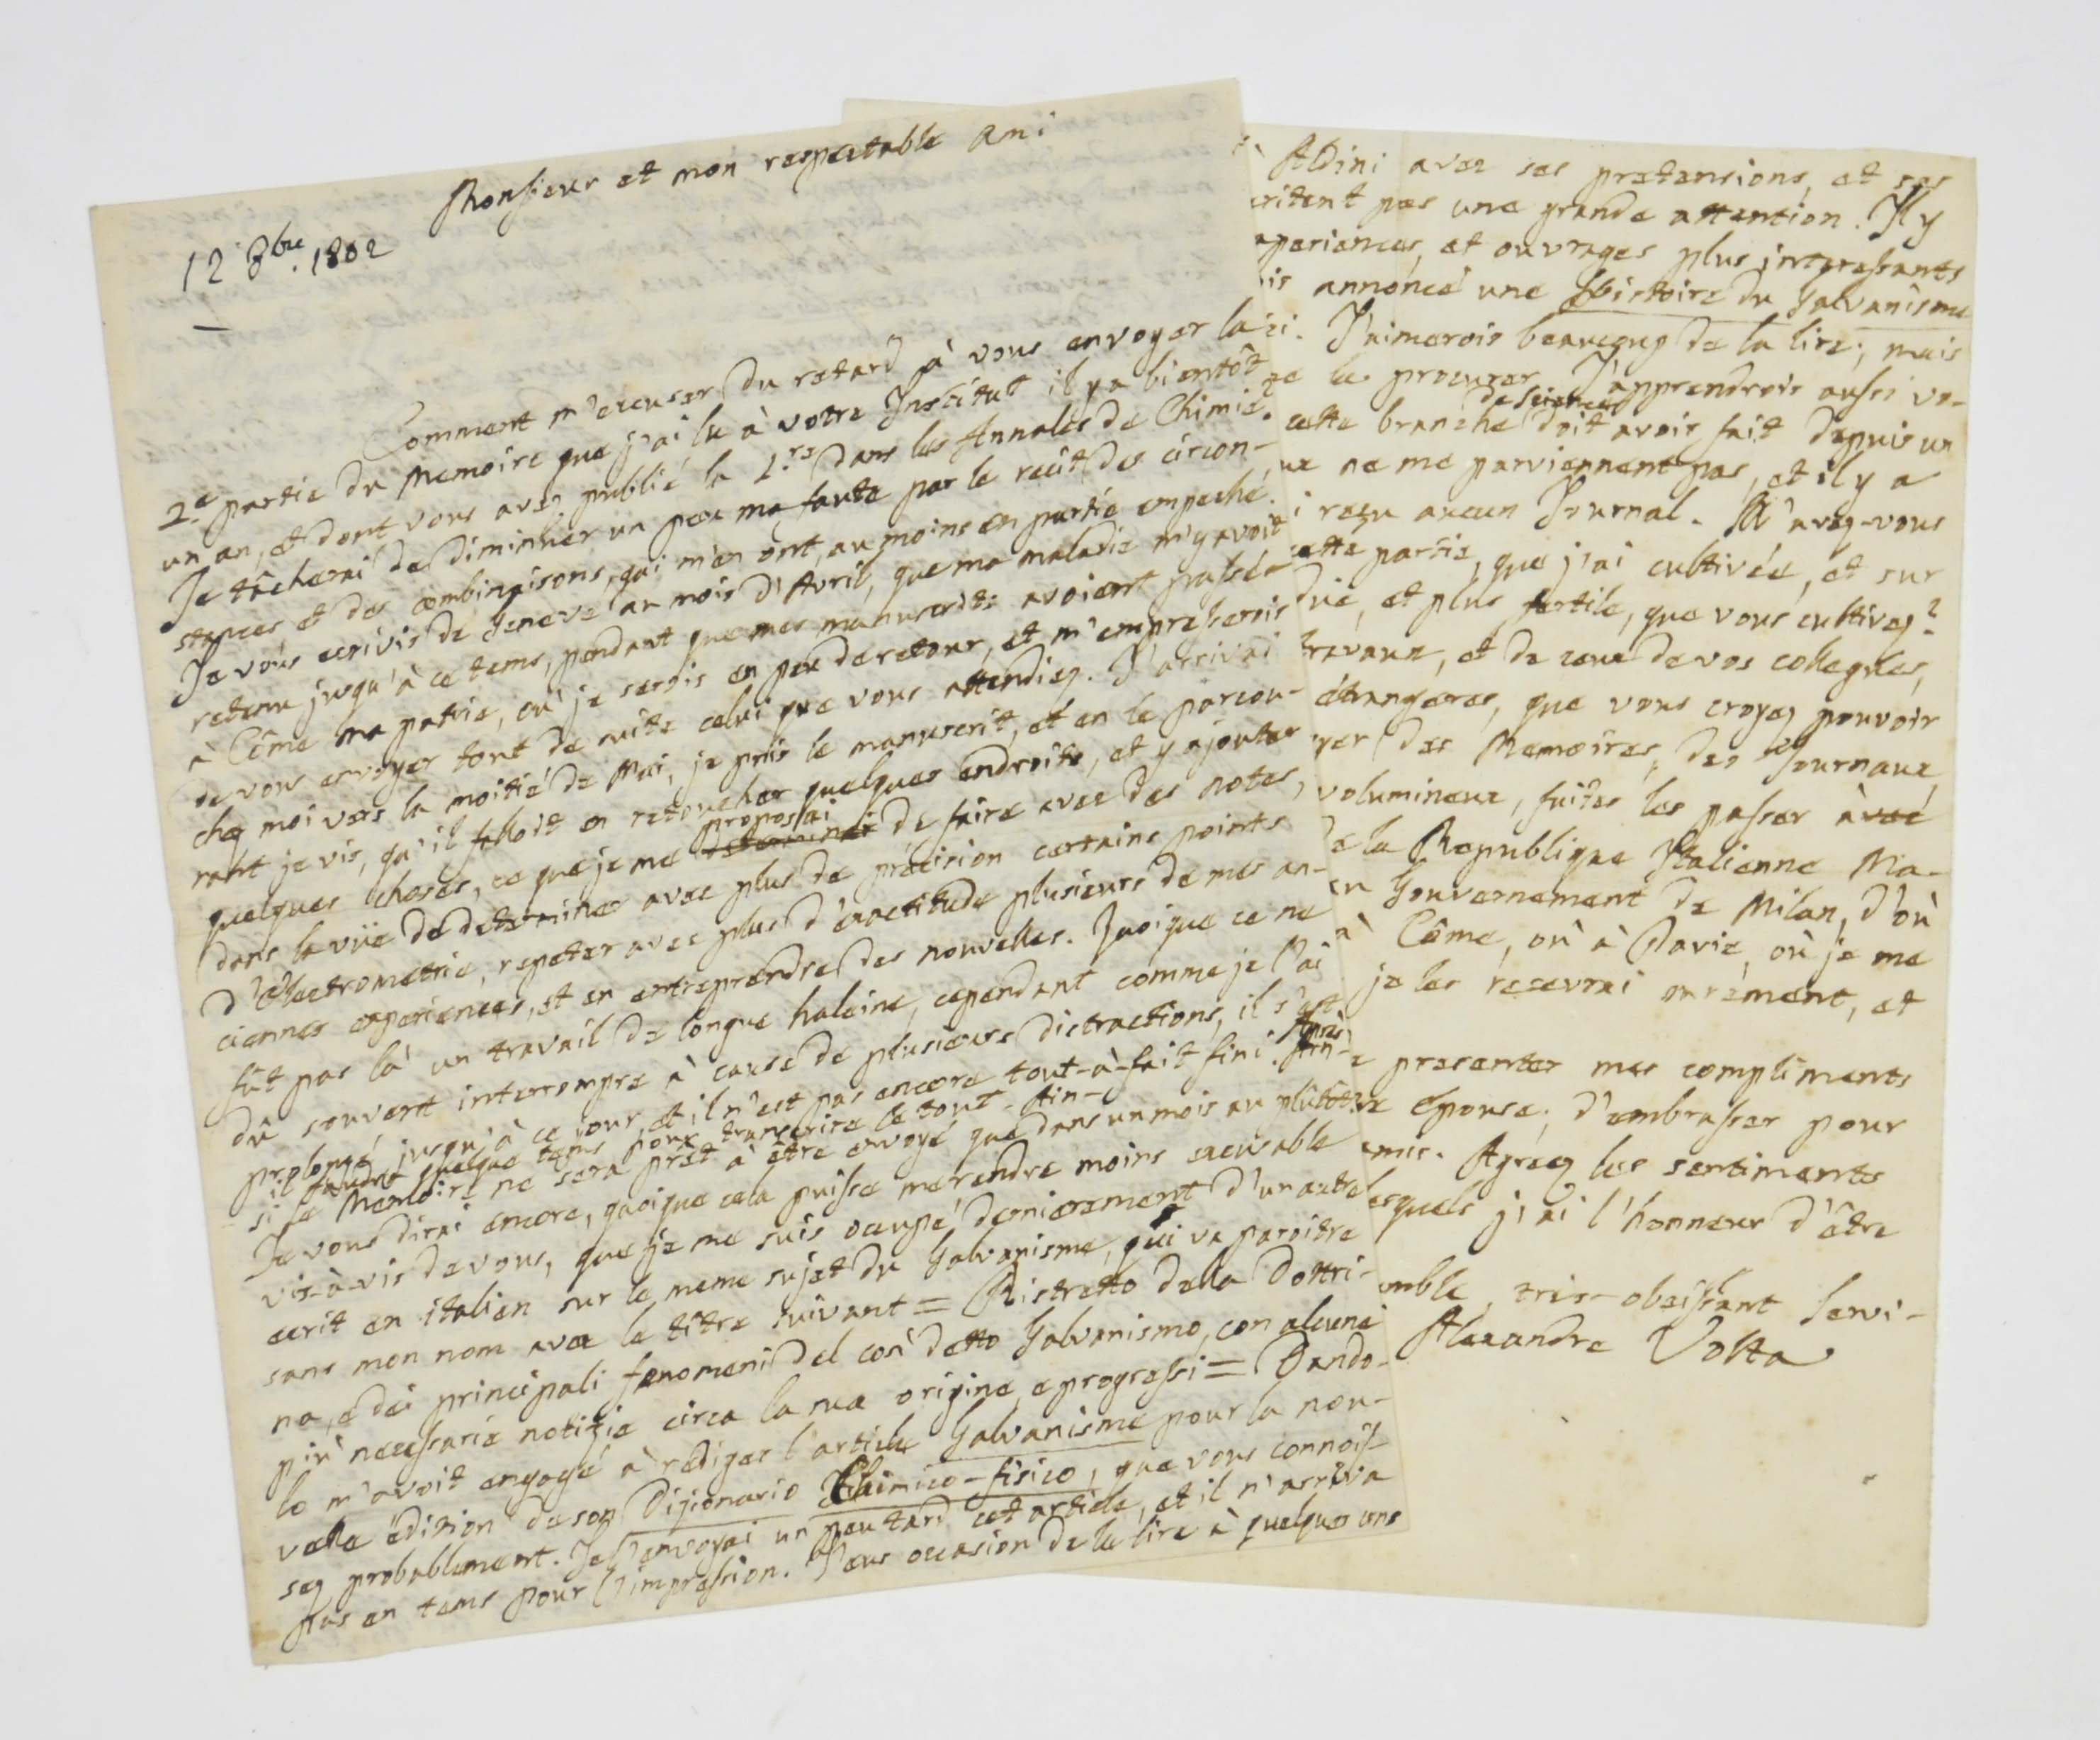 VOLTA, Alessandro (1745-1827). Autograph letter signed to an unidentified correspondent [Claude-Louis Berthollet], Como, 12 October 1802, in French, 5 pages, small 4to.